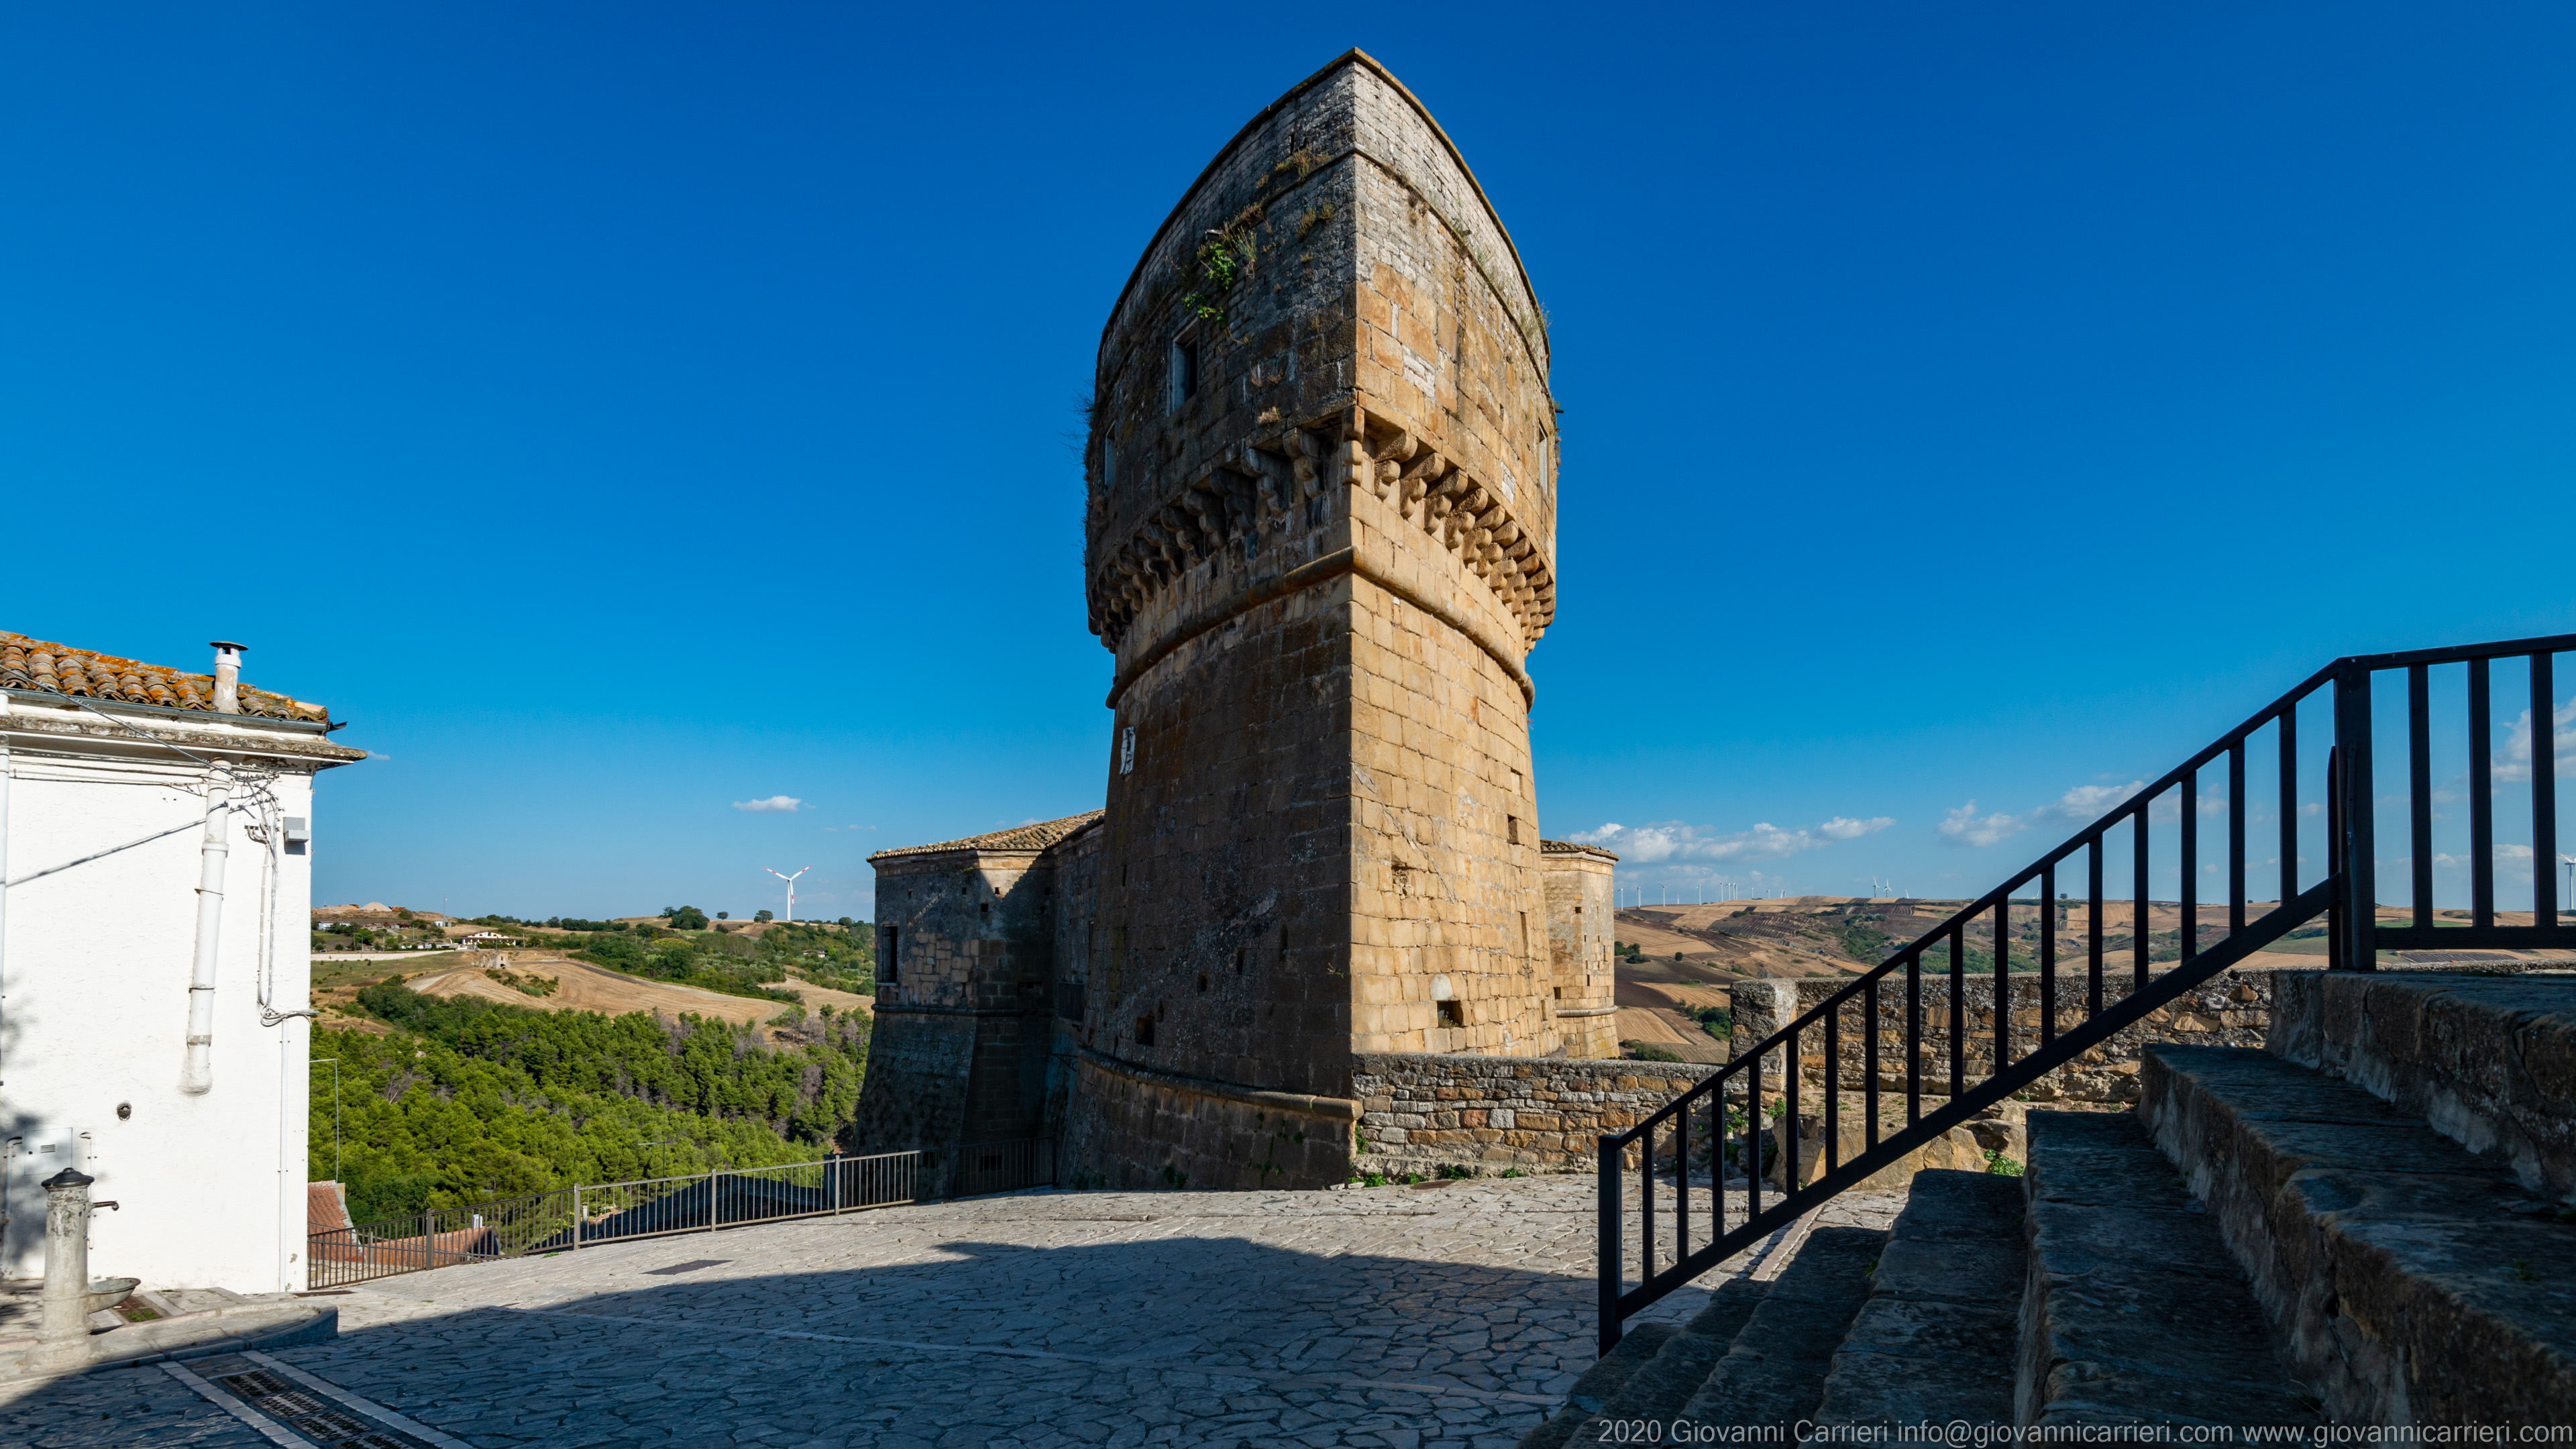 Nose-shaped tower of the Castle of the Counts of Aquino The highest tower of the Castle D'Aquino, stands towards the historic center of Rocchetta Sant'Antonio. Probably, erected more to represent the power of Baron Ladislao II d'Aquino than for military functions.